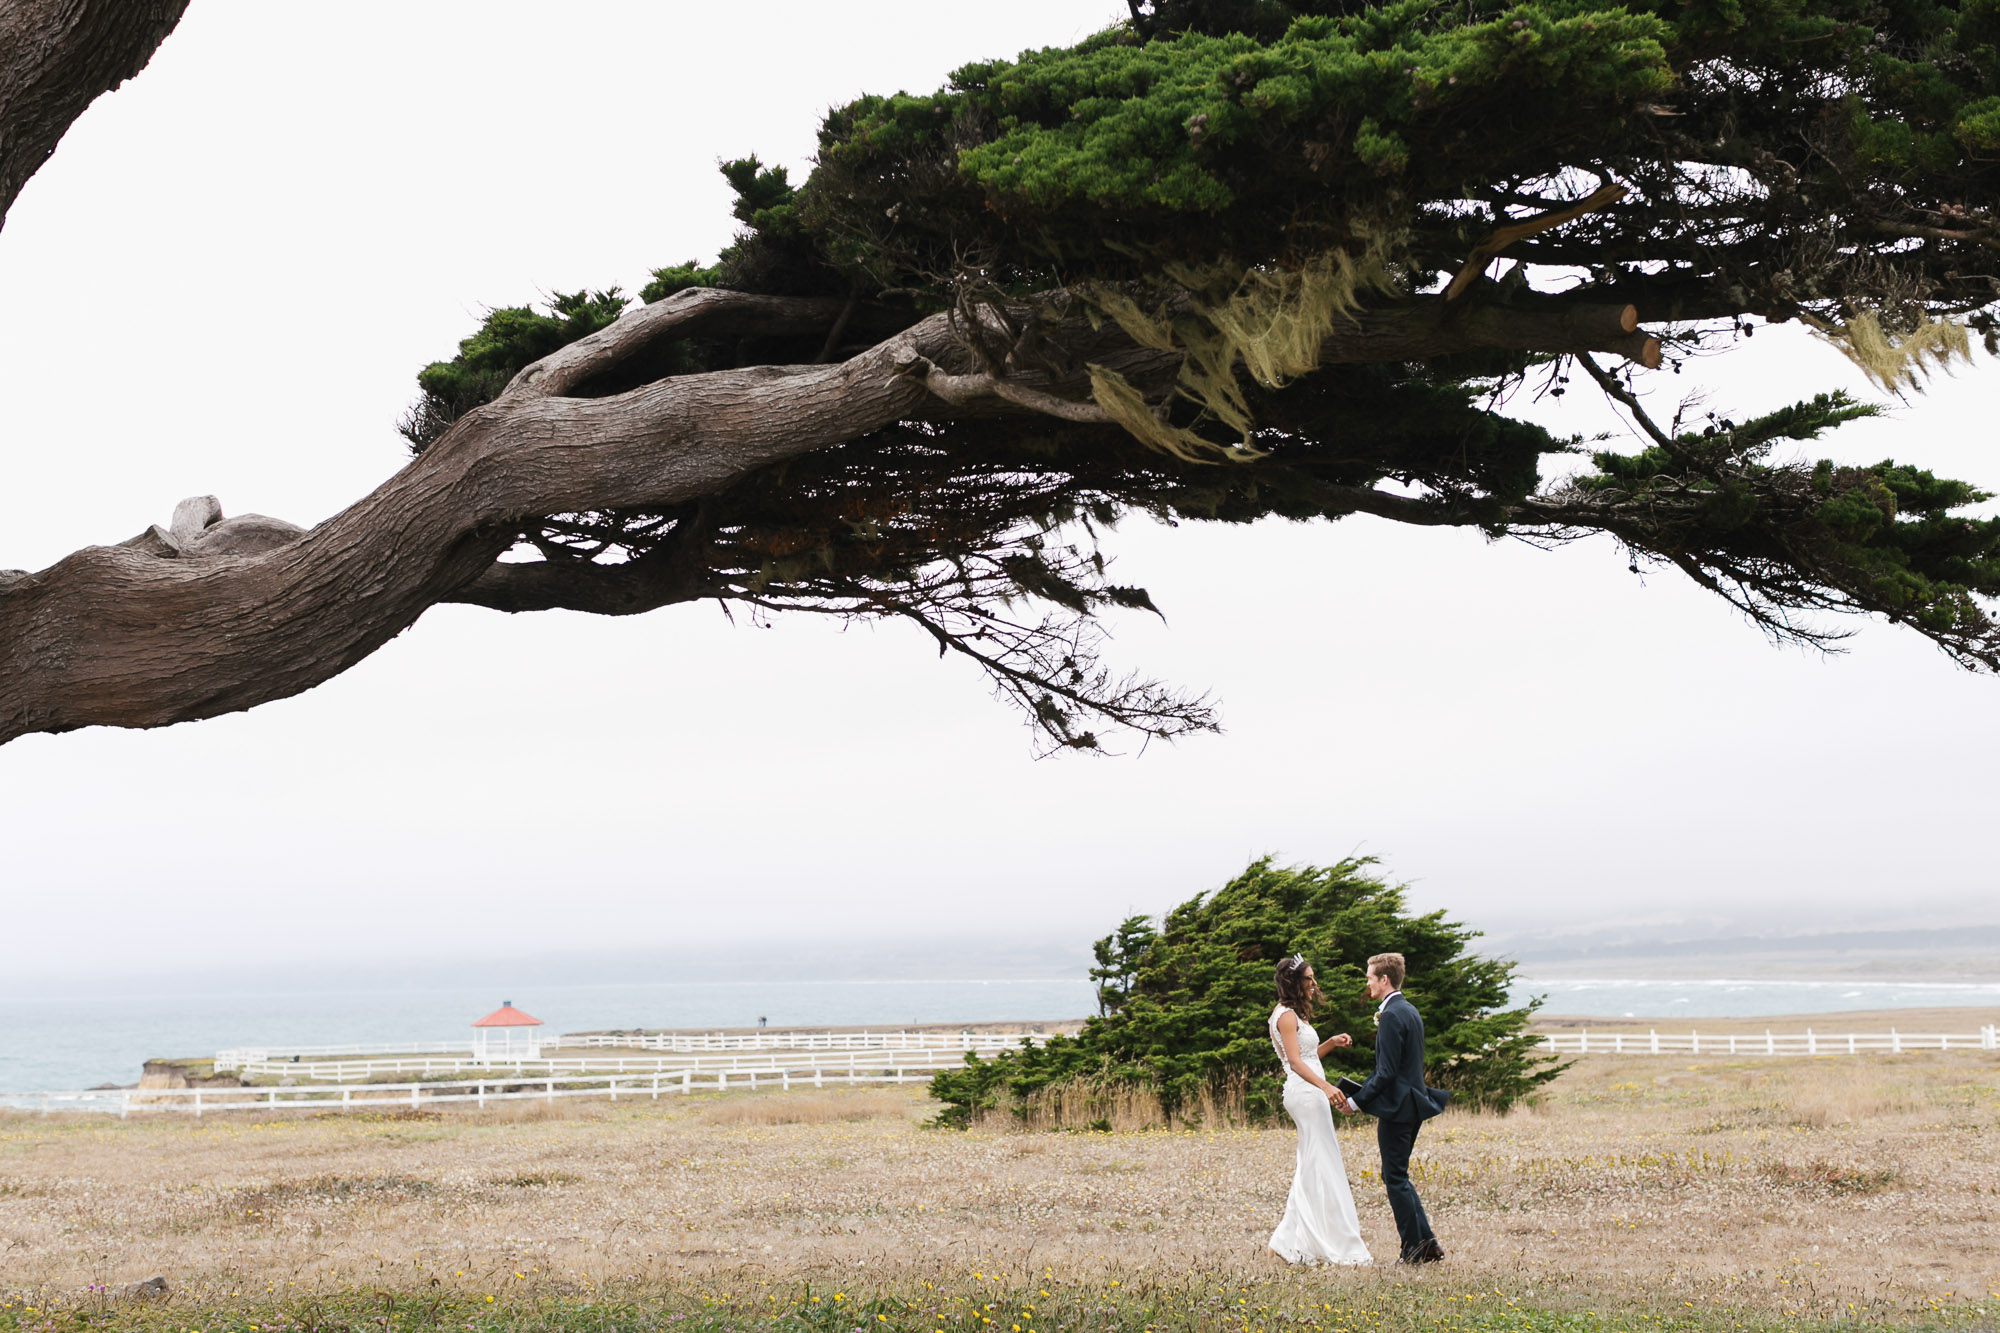 Bride and groom see each other for the first time on their wedding day in meadow